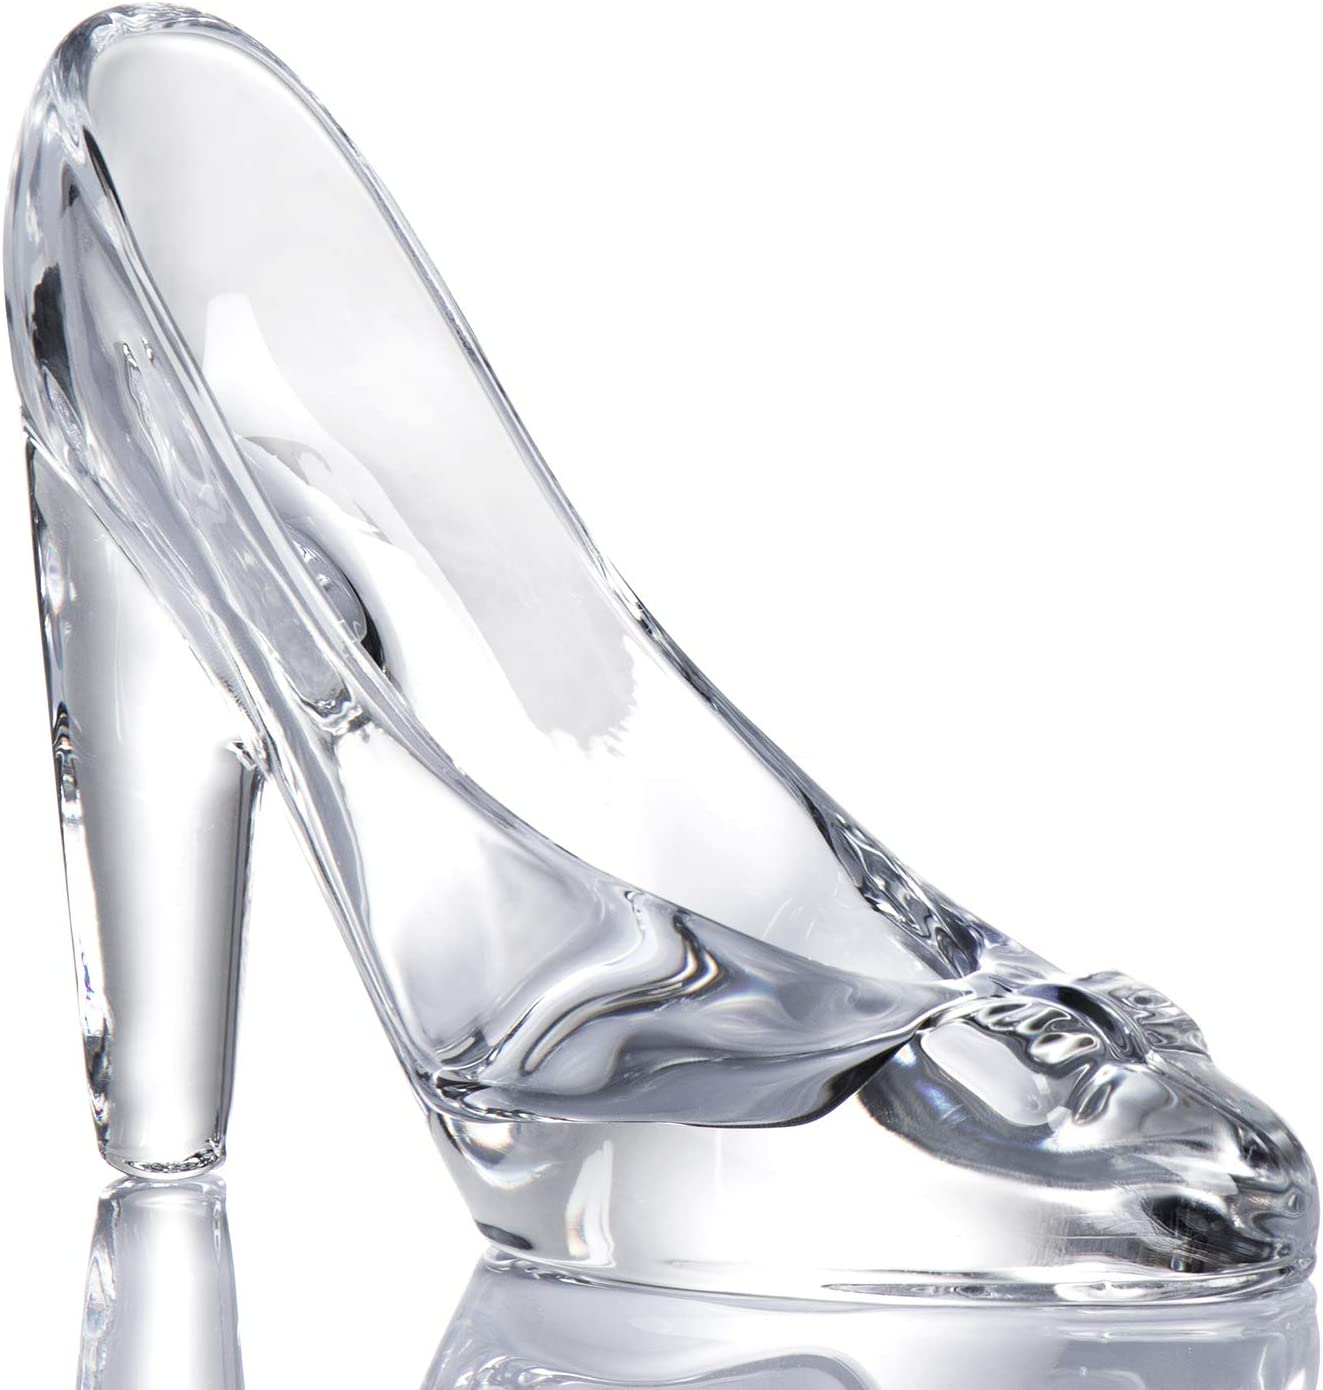 Tiktalk Cinderella Glass Slipper Crystal High Heels Shoes Figurine Ornaments for Girls Coming-of-Age Ceremony Gift Birthday Party Decorations